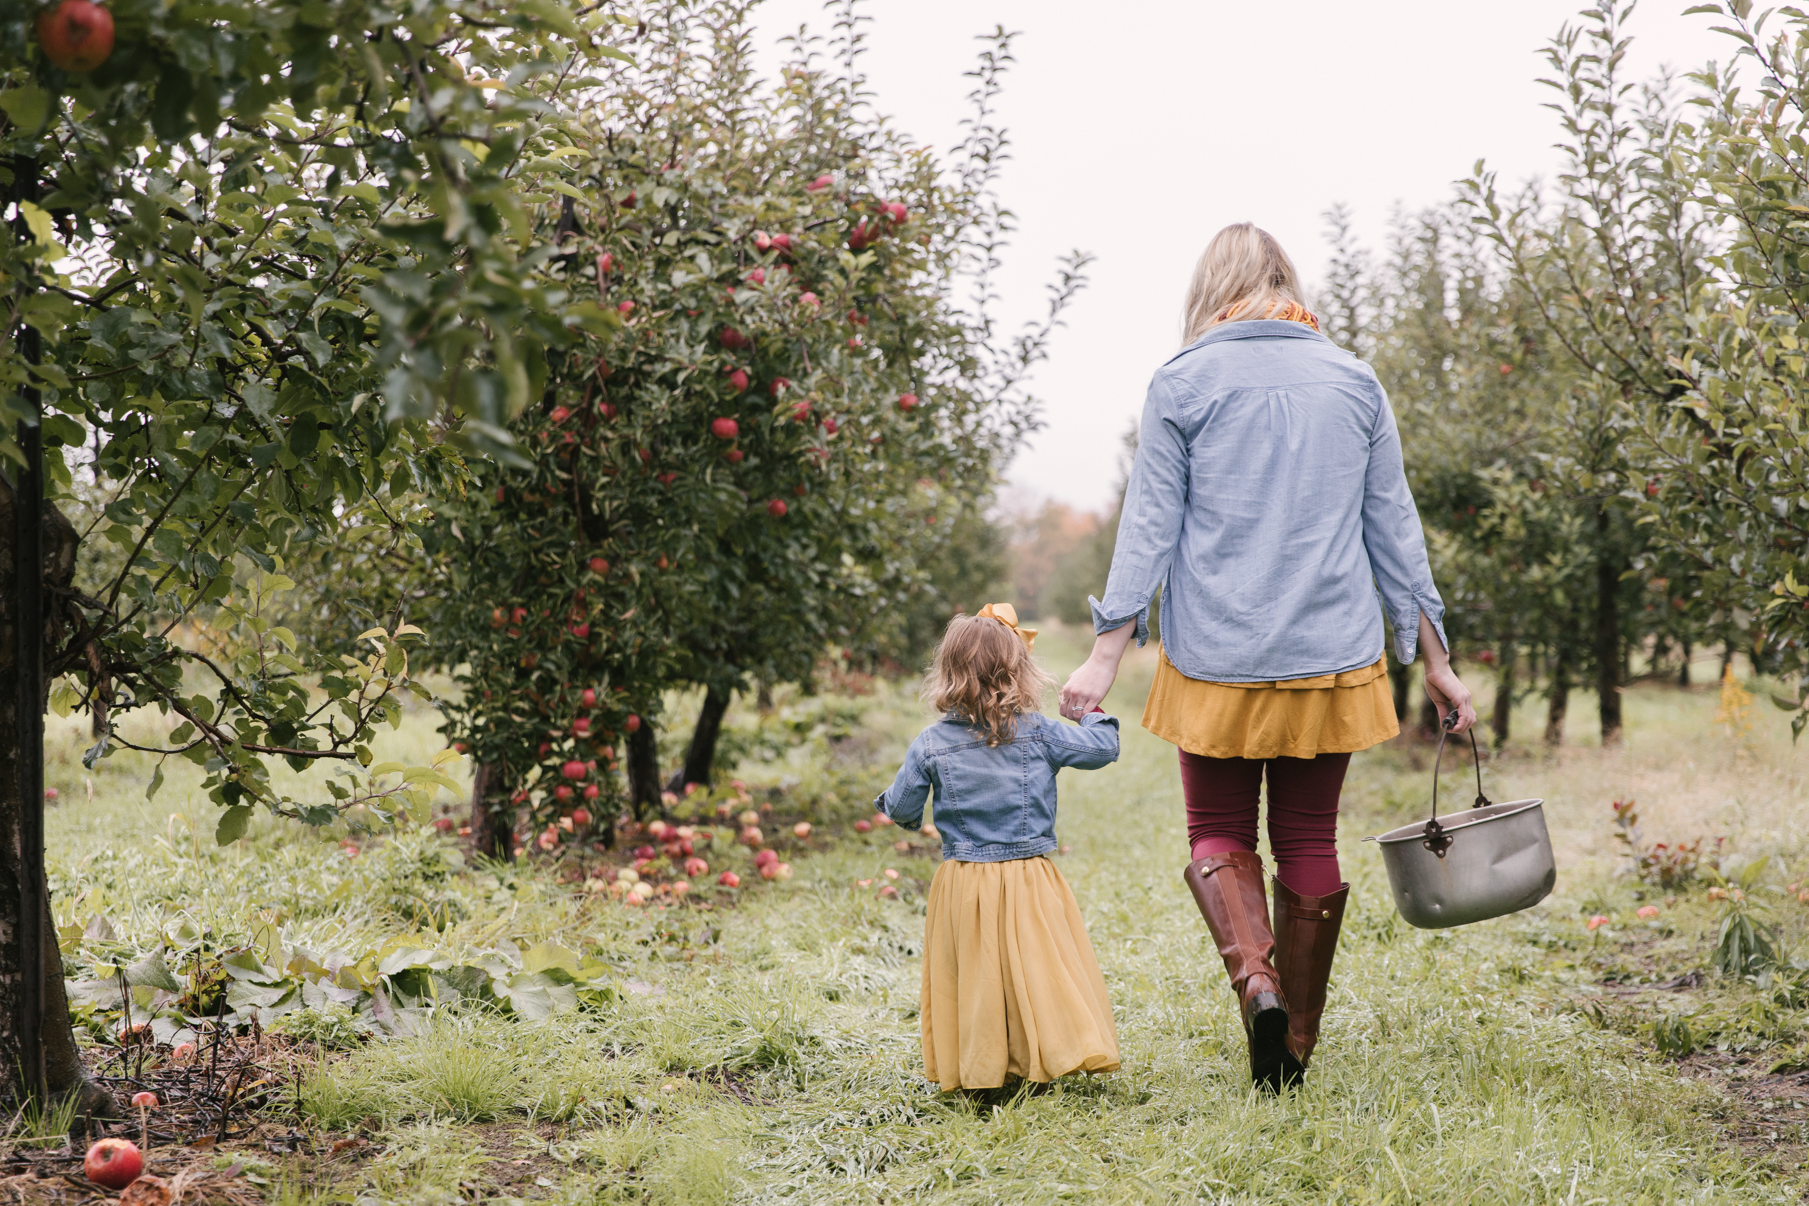 family-photography-session-at-hartford-apple-orchards-hartford-ohio-by-family-photographer-christie-leigh-photo-24.JPG